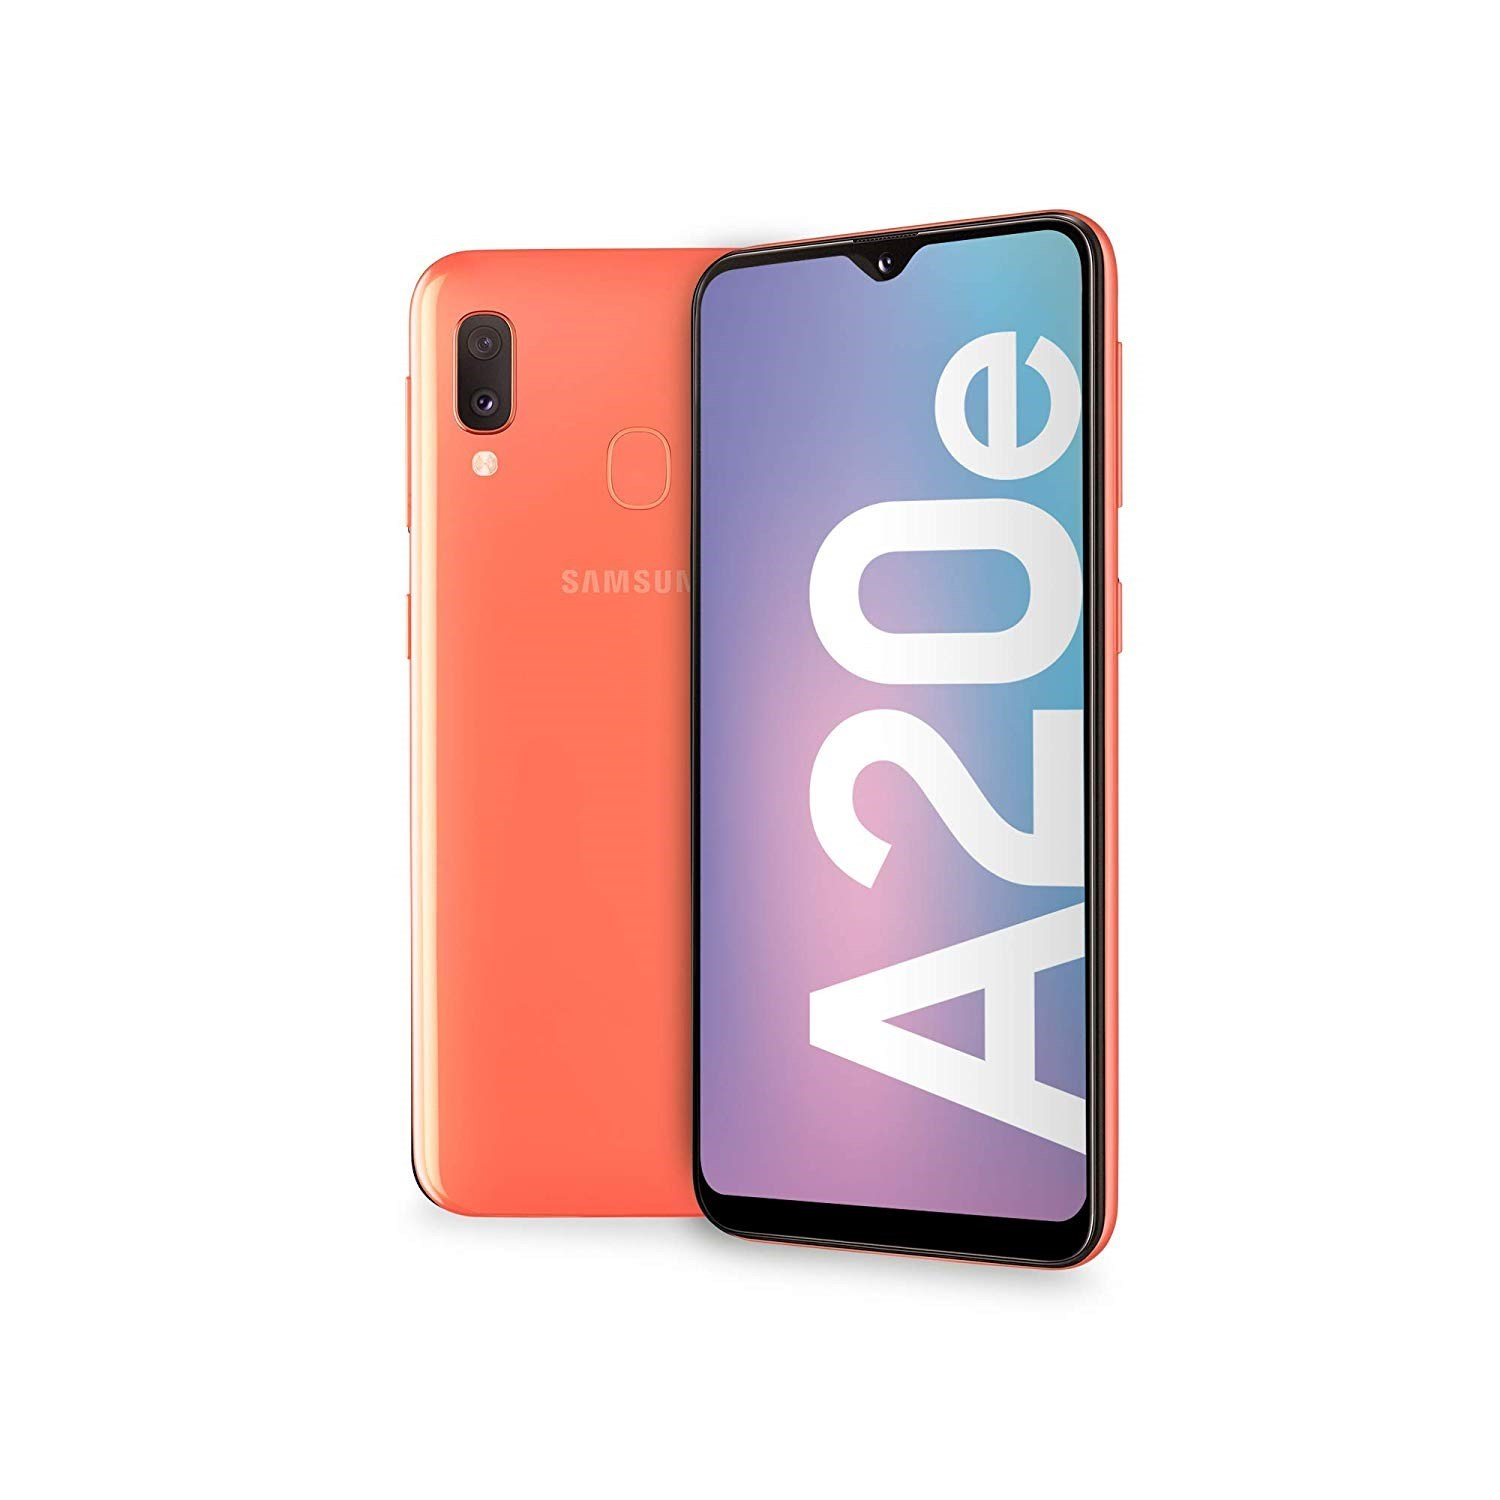 TELEFONO MOVIL SAMSUNG GALAXY A20E CORAL 5.8-OC1.6-3GB-32GB